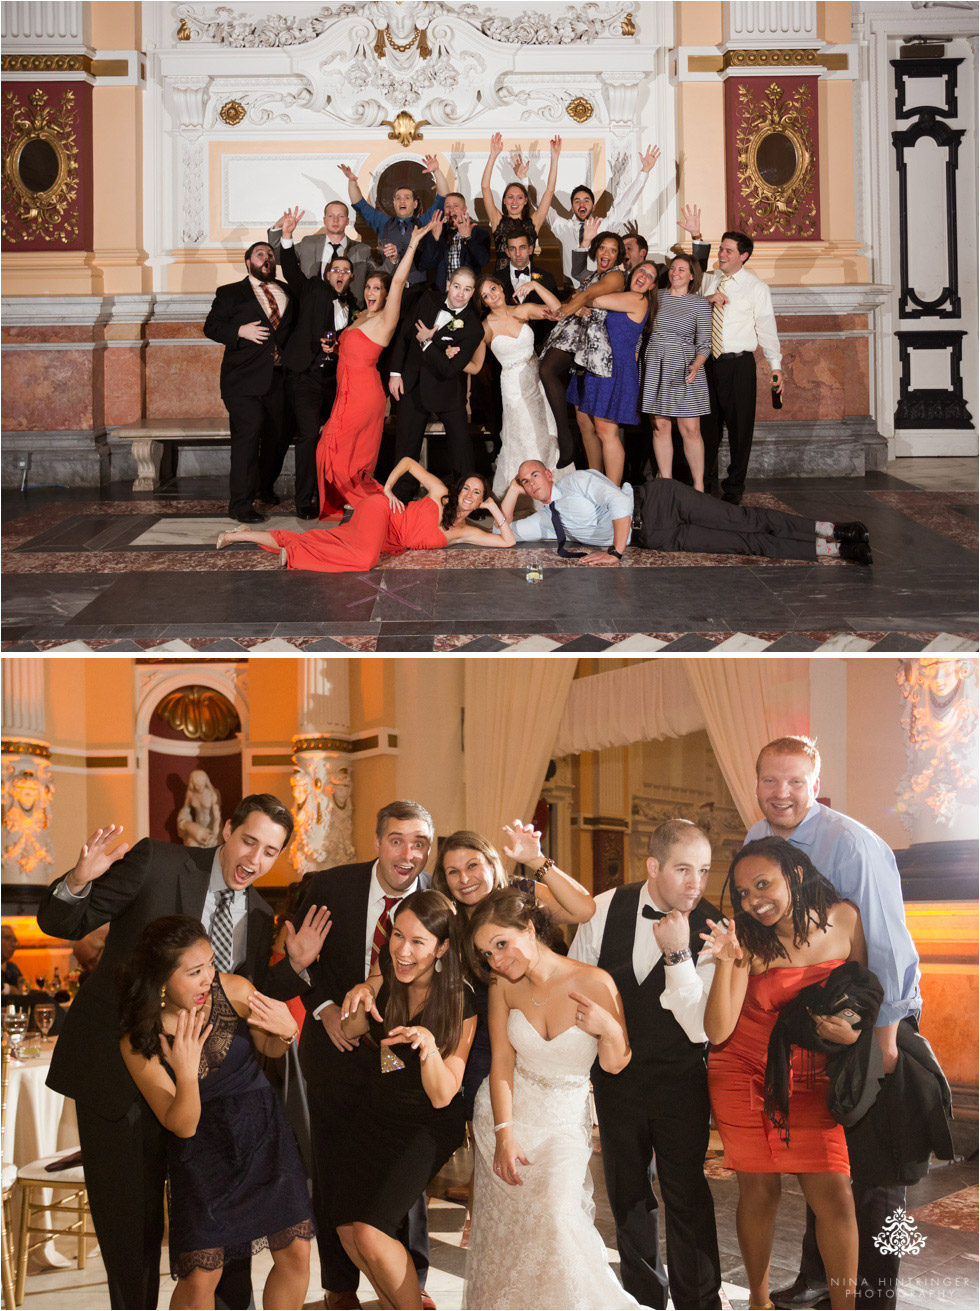 Fun group shots at Please Touch Museum in Hamilton hall in Philadelphia, Pennsylvania - Blog of Nina Hintringer Photography - Wedding Photography, Wedding Reportage and Destination Weddings